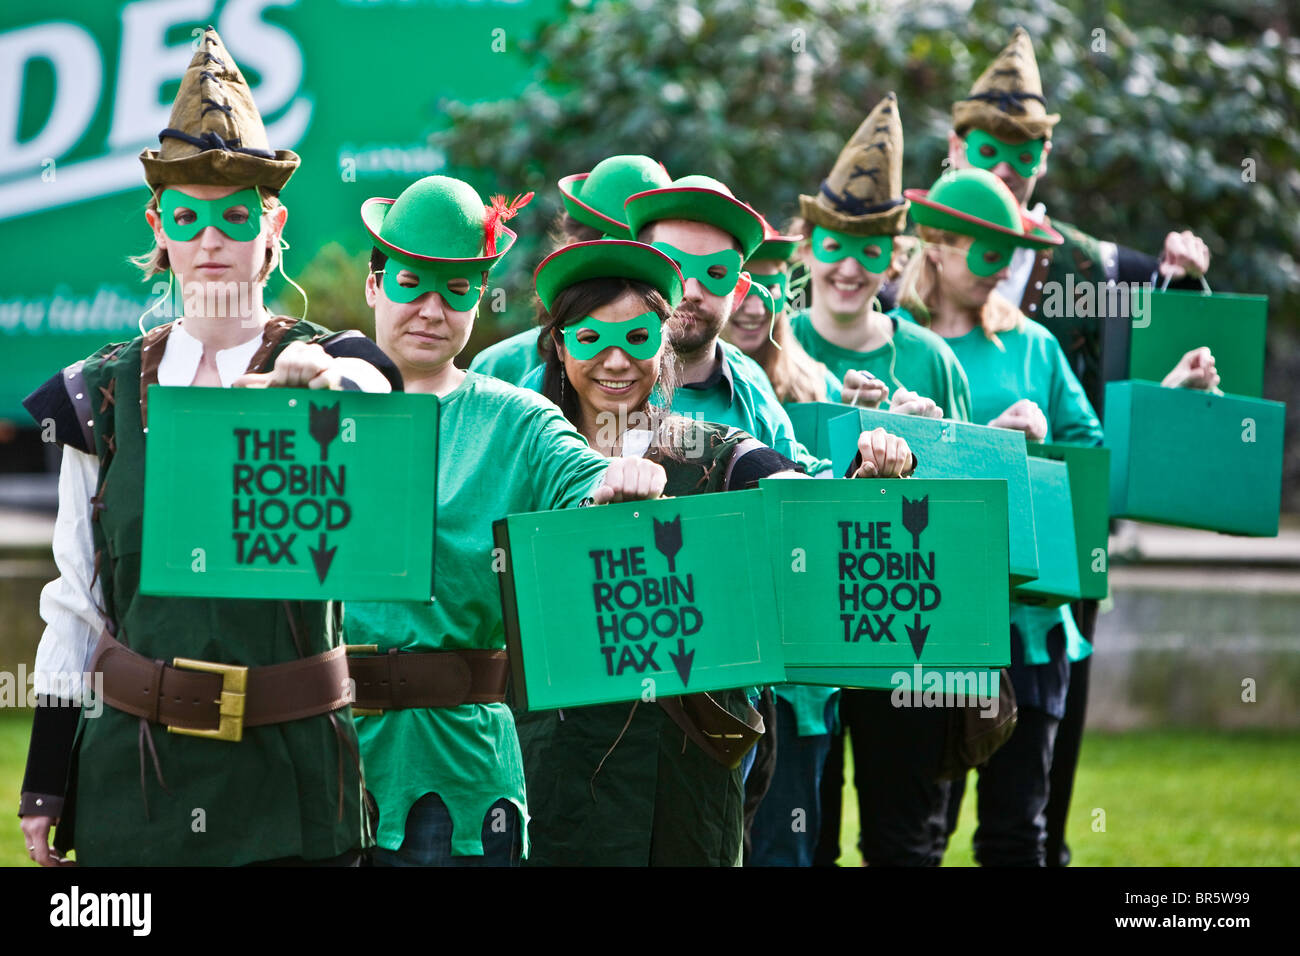 Robin Hood Tax campaign, the green-clad Robin Hoods marched to Stock